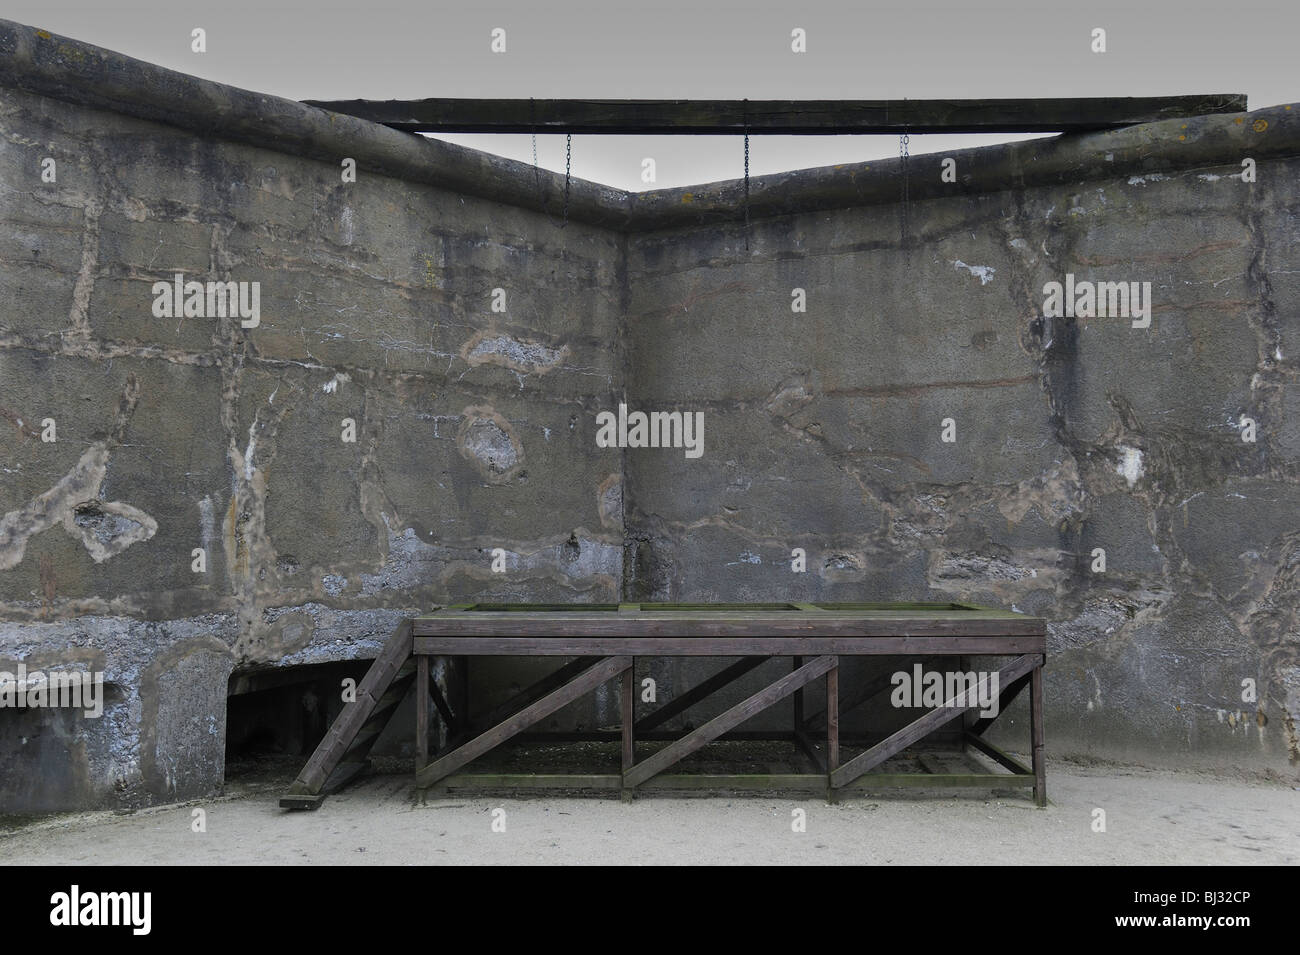 Gallows where prisoners were executed at Fort Breendonk, Second World War Two concentration camp in Belgium - Stock Image